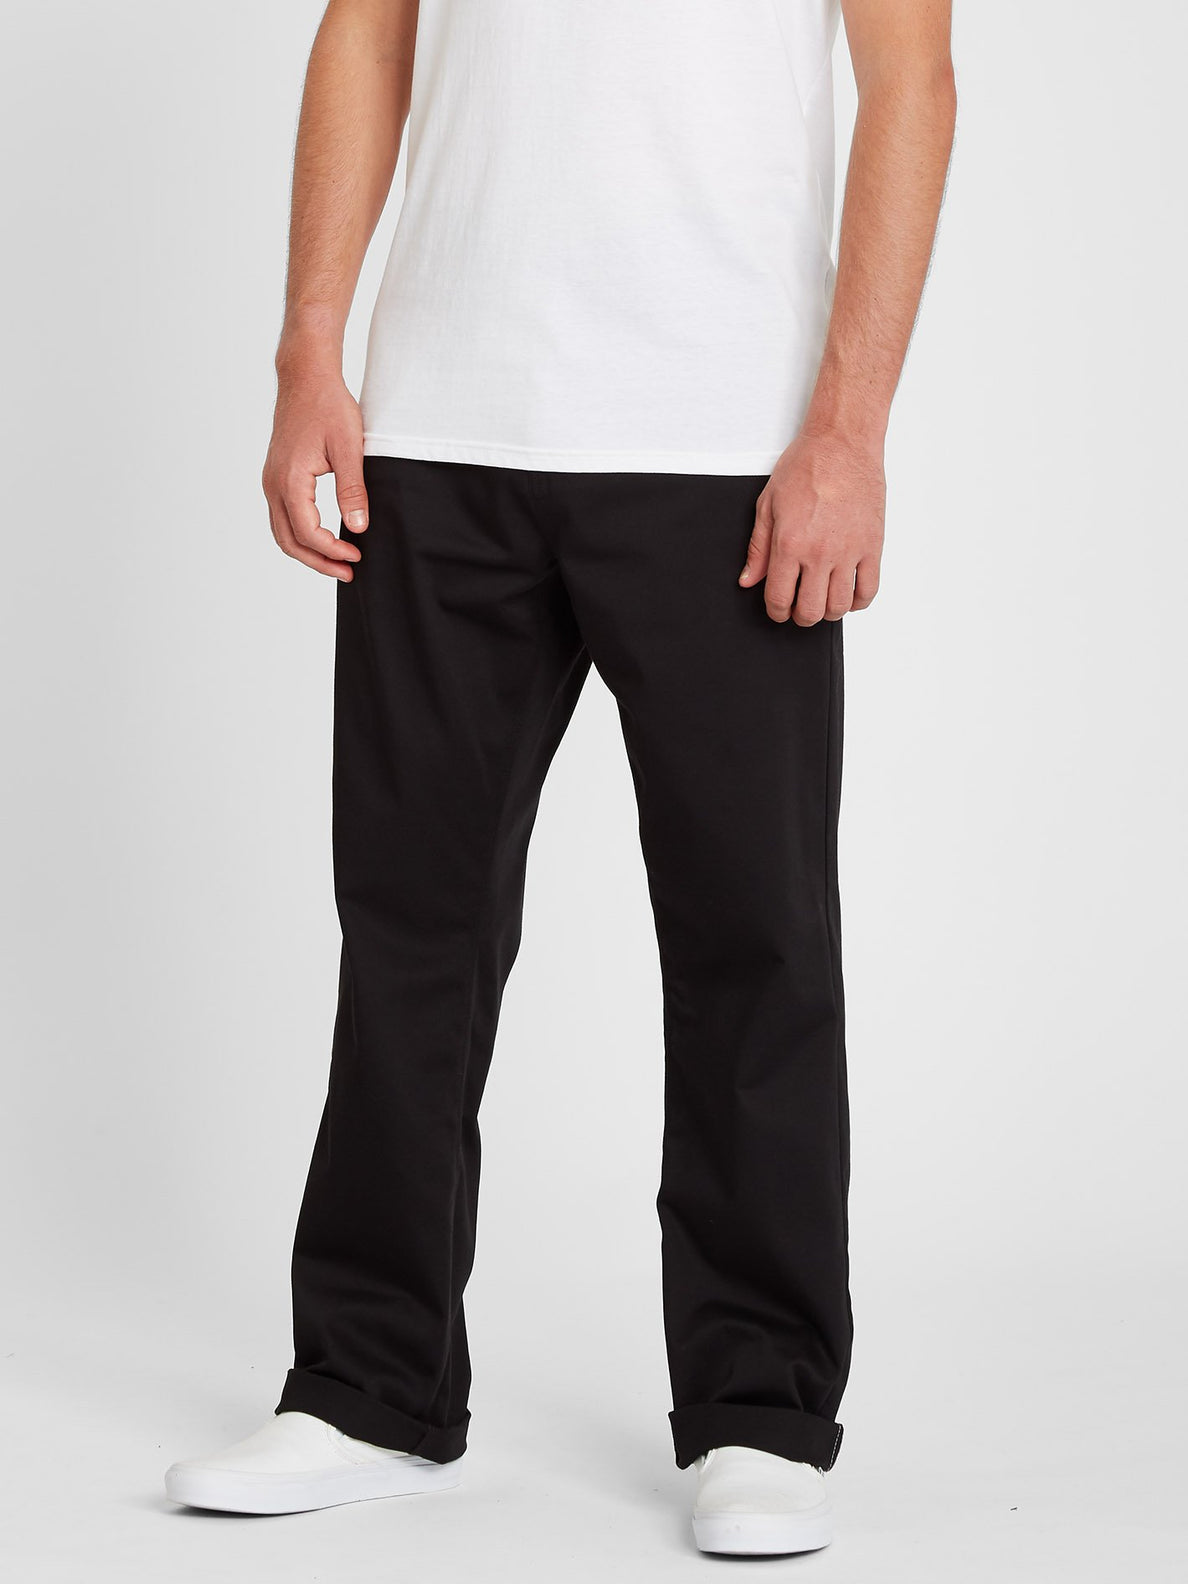 Substance Chino Pant - Black (A1112104_BLK) [F]